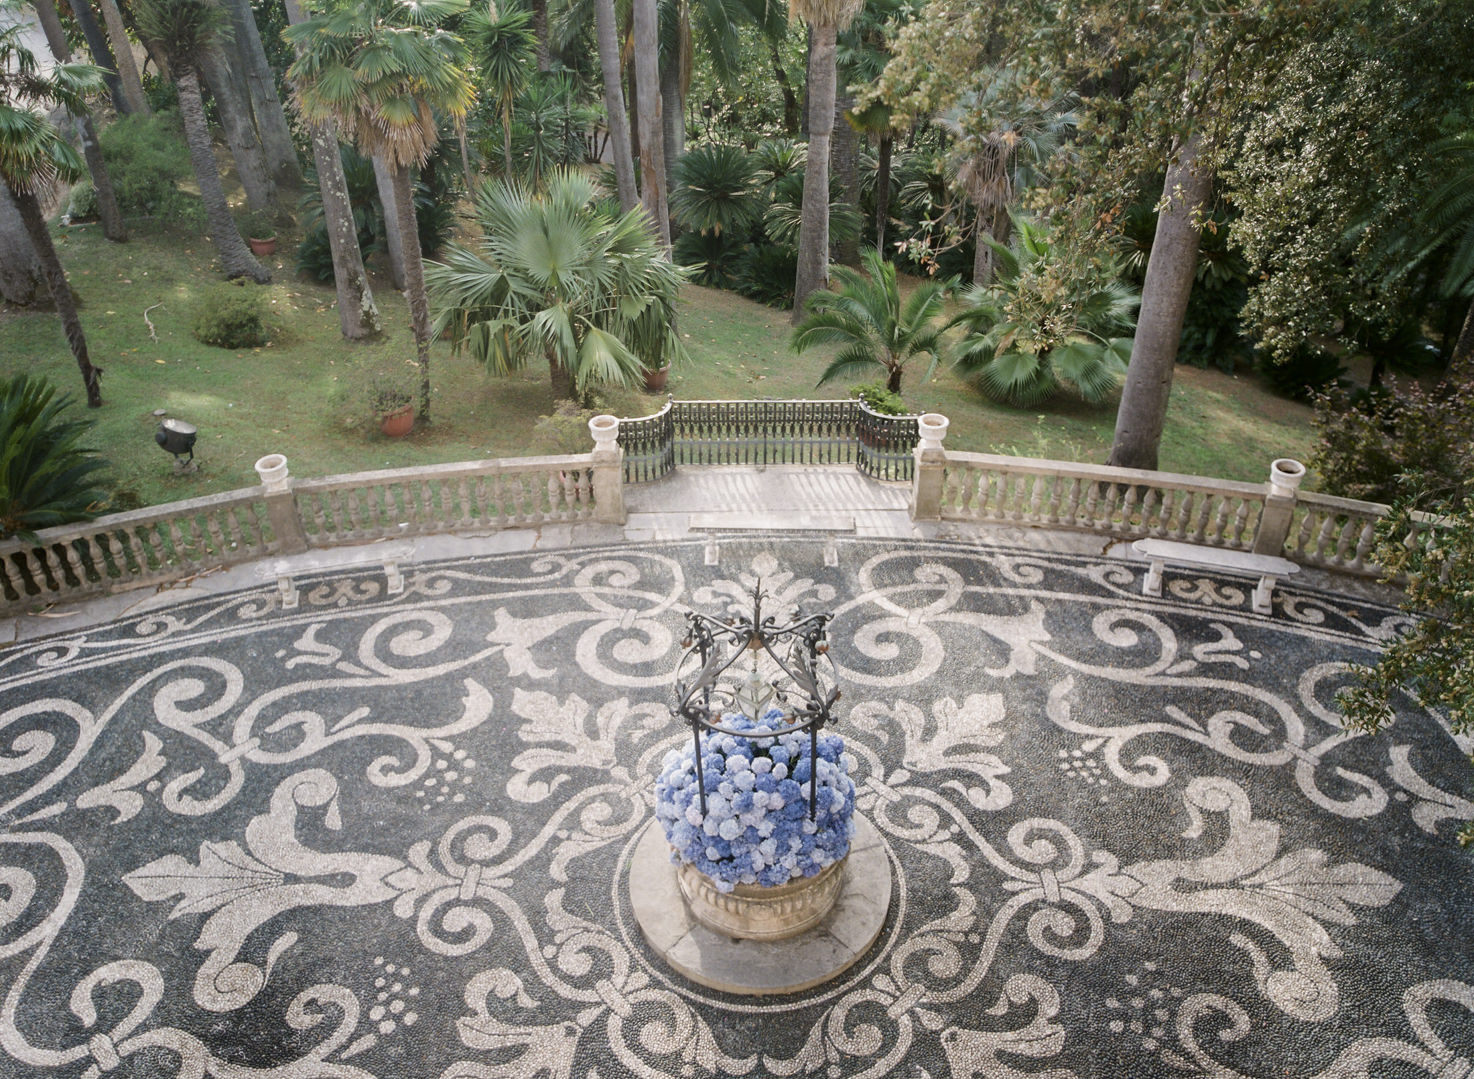 Mosaic pavement in the gardens